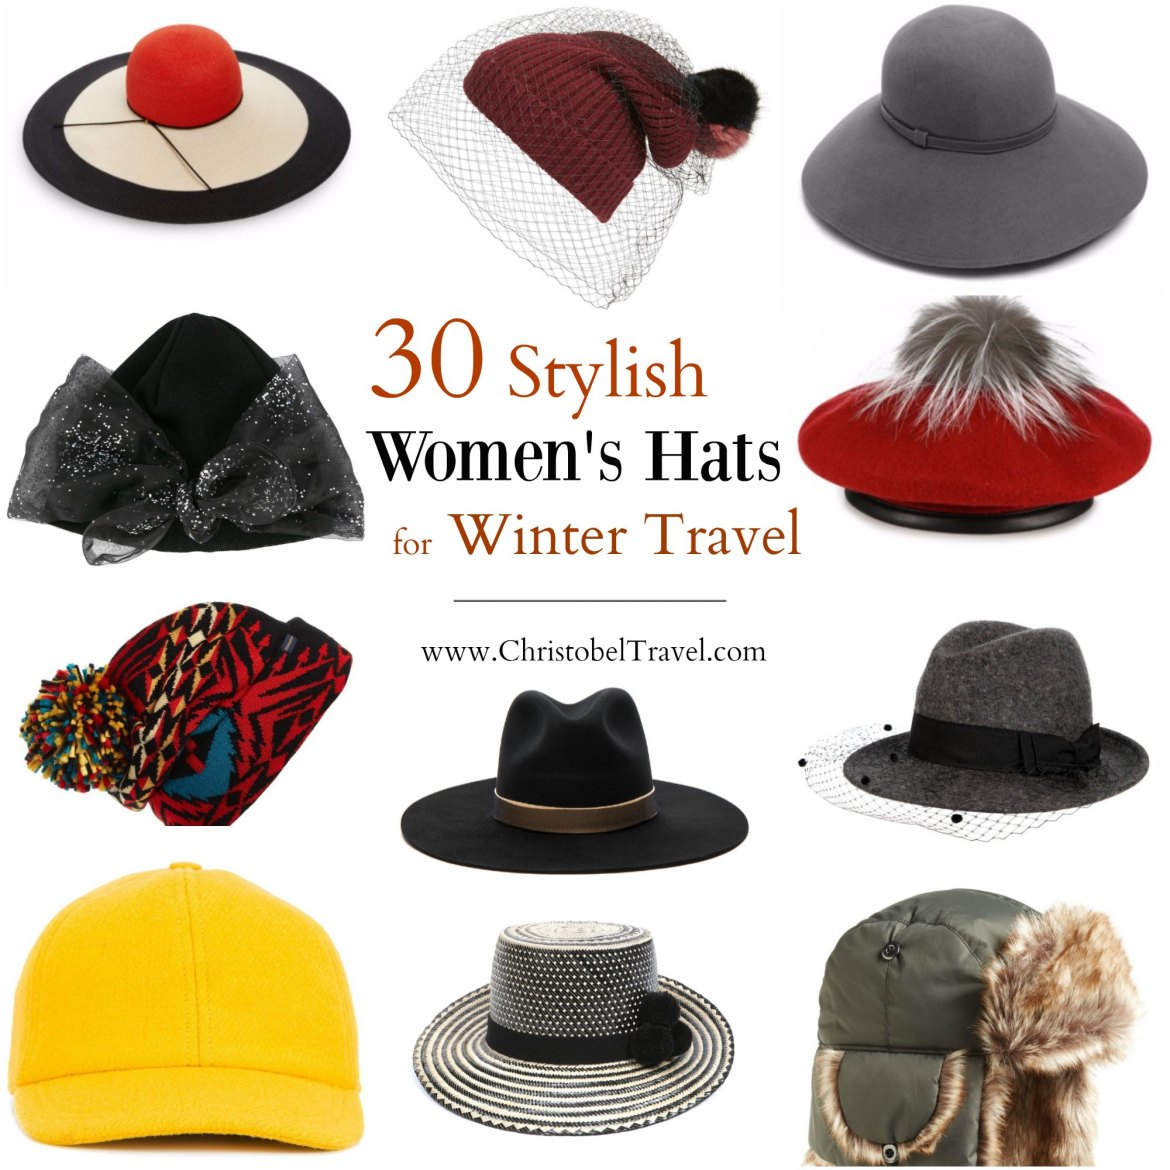 30 Stylish Women s Hats for Winter Travel - Christobel Travel 0526cfff23b8